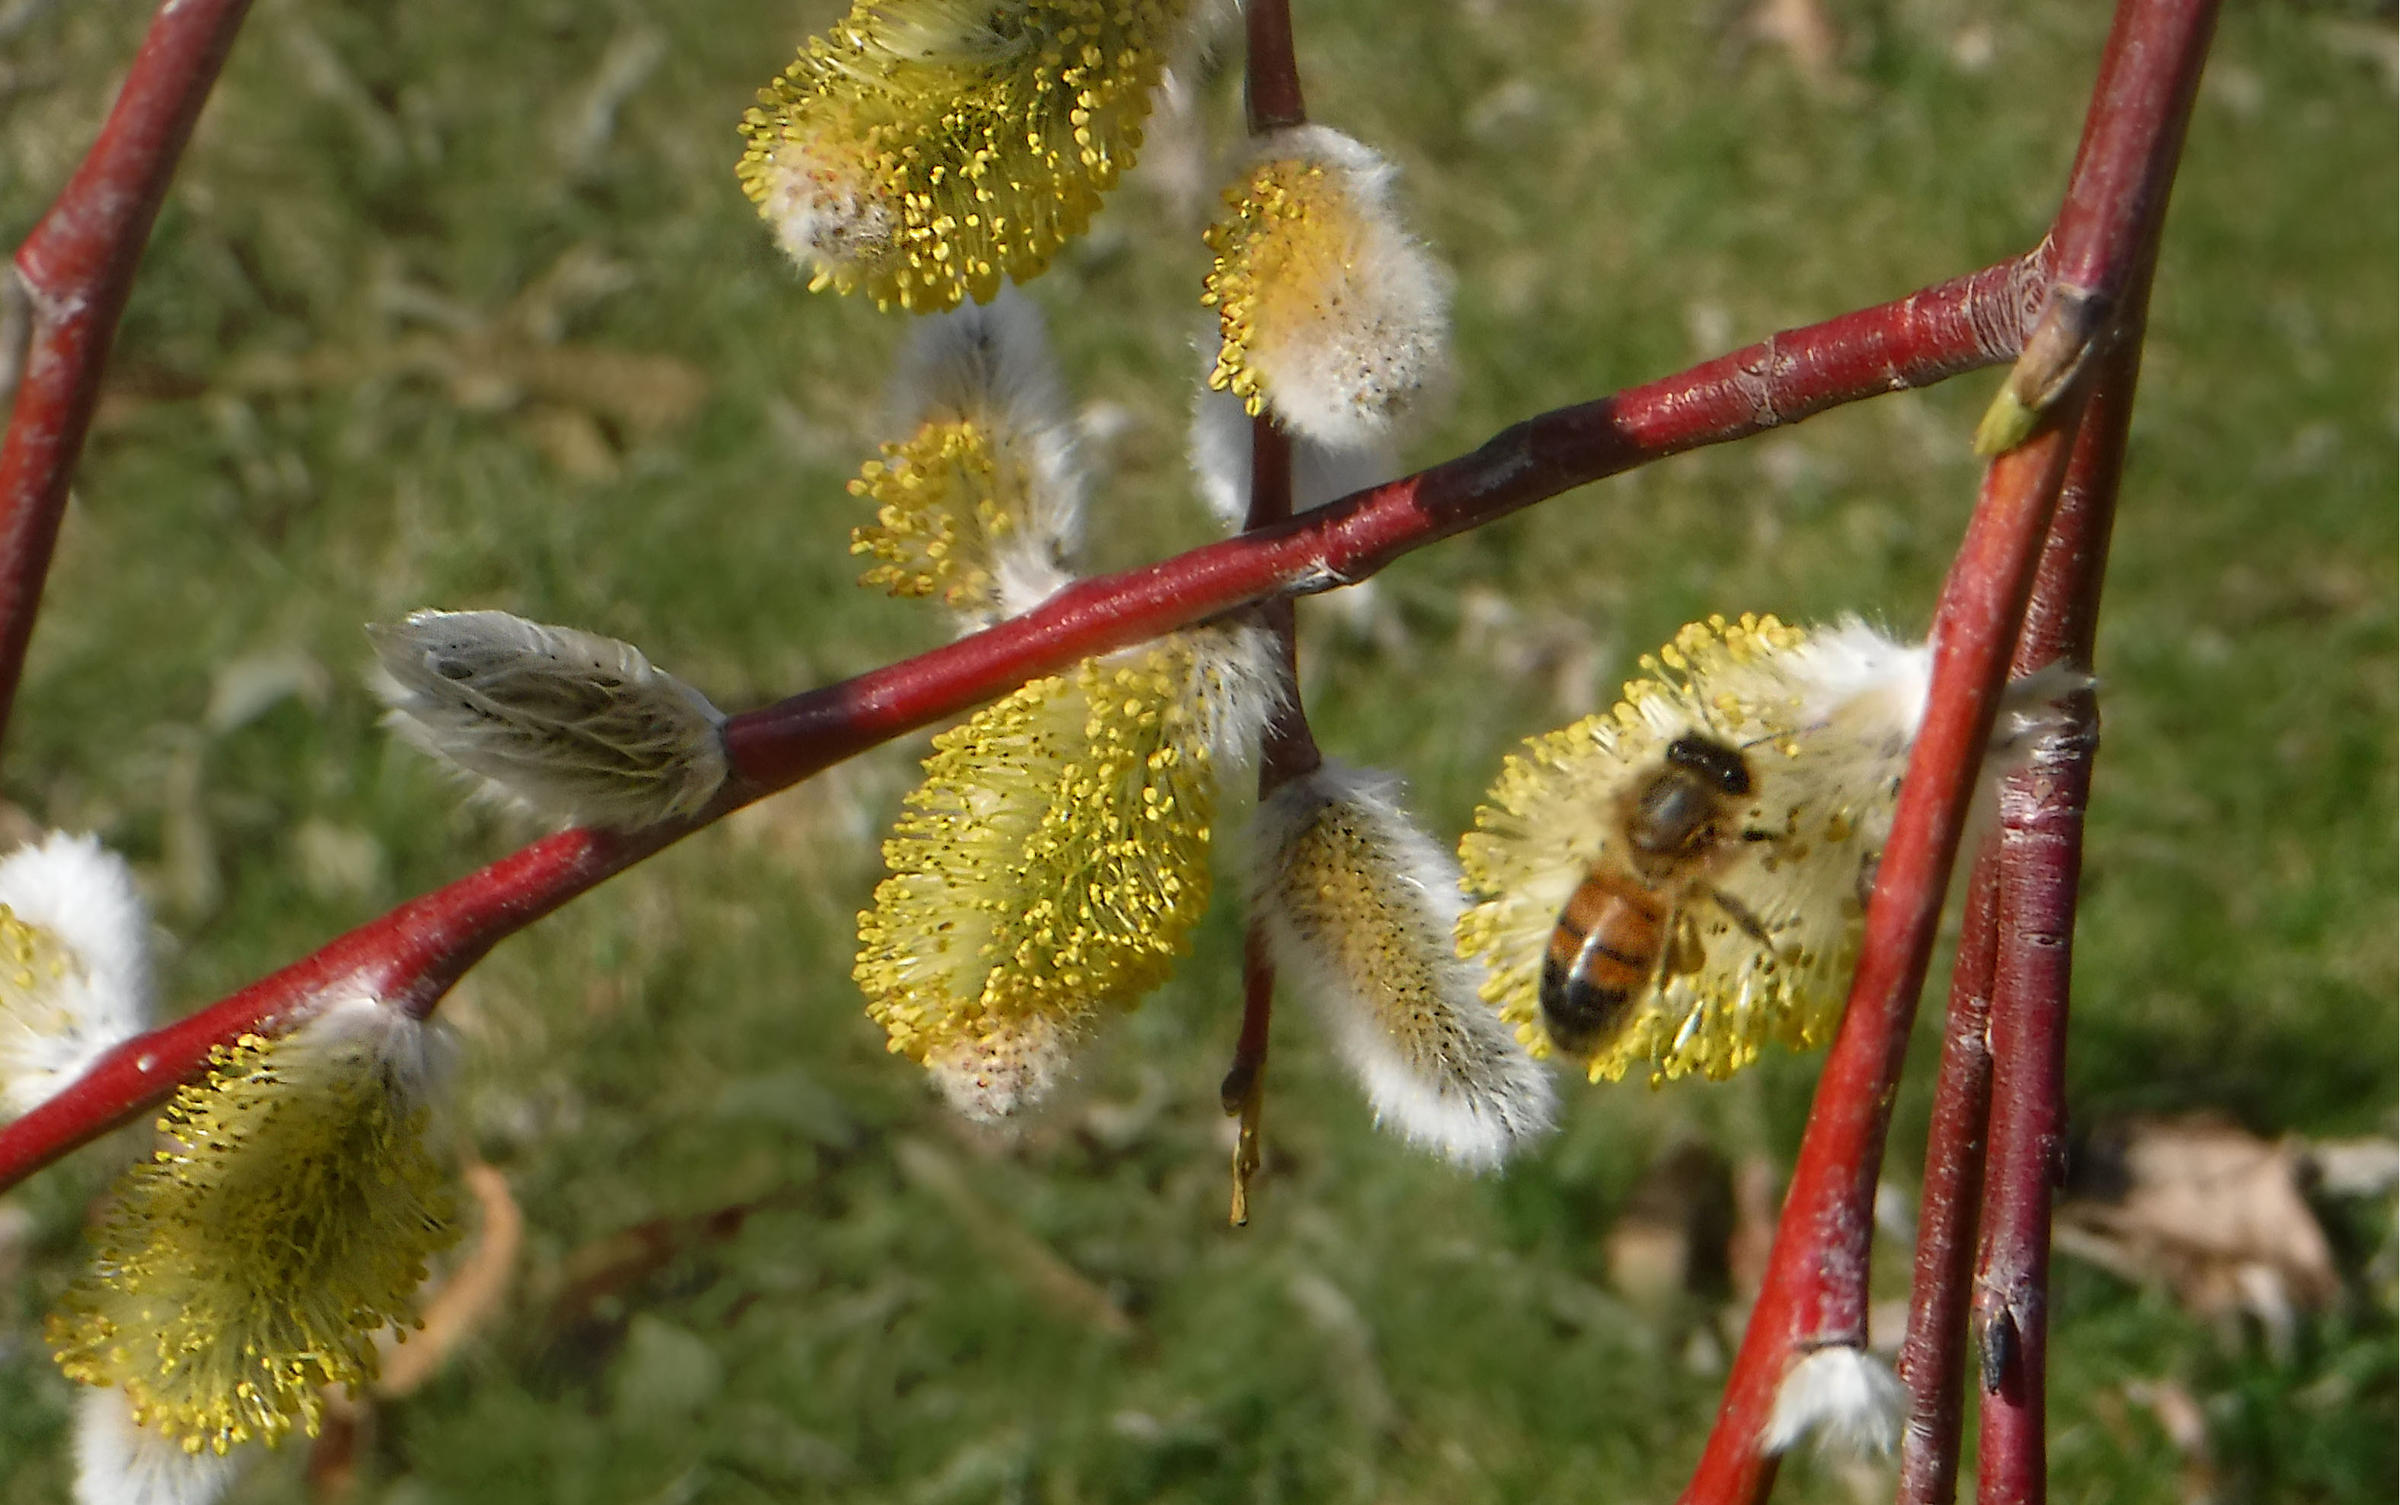 A honeybee on a male flower of a glaucous willow in March 2016